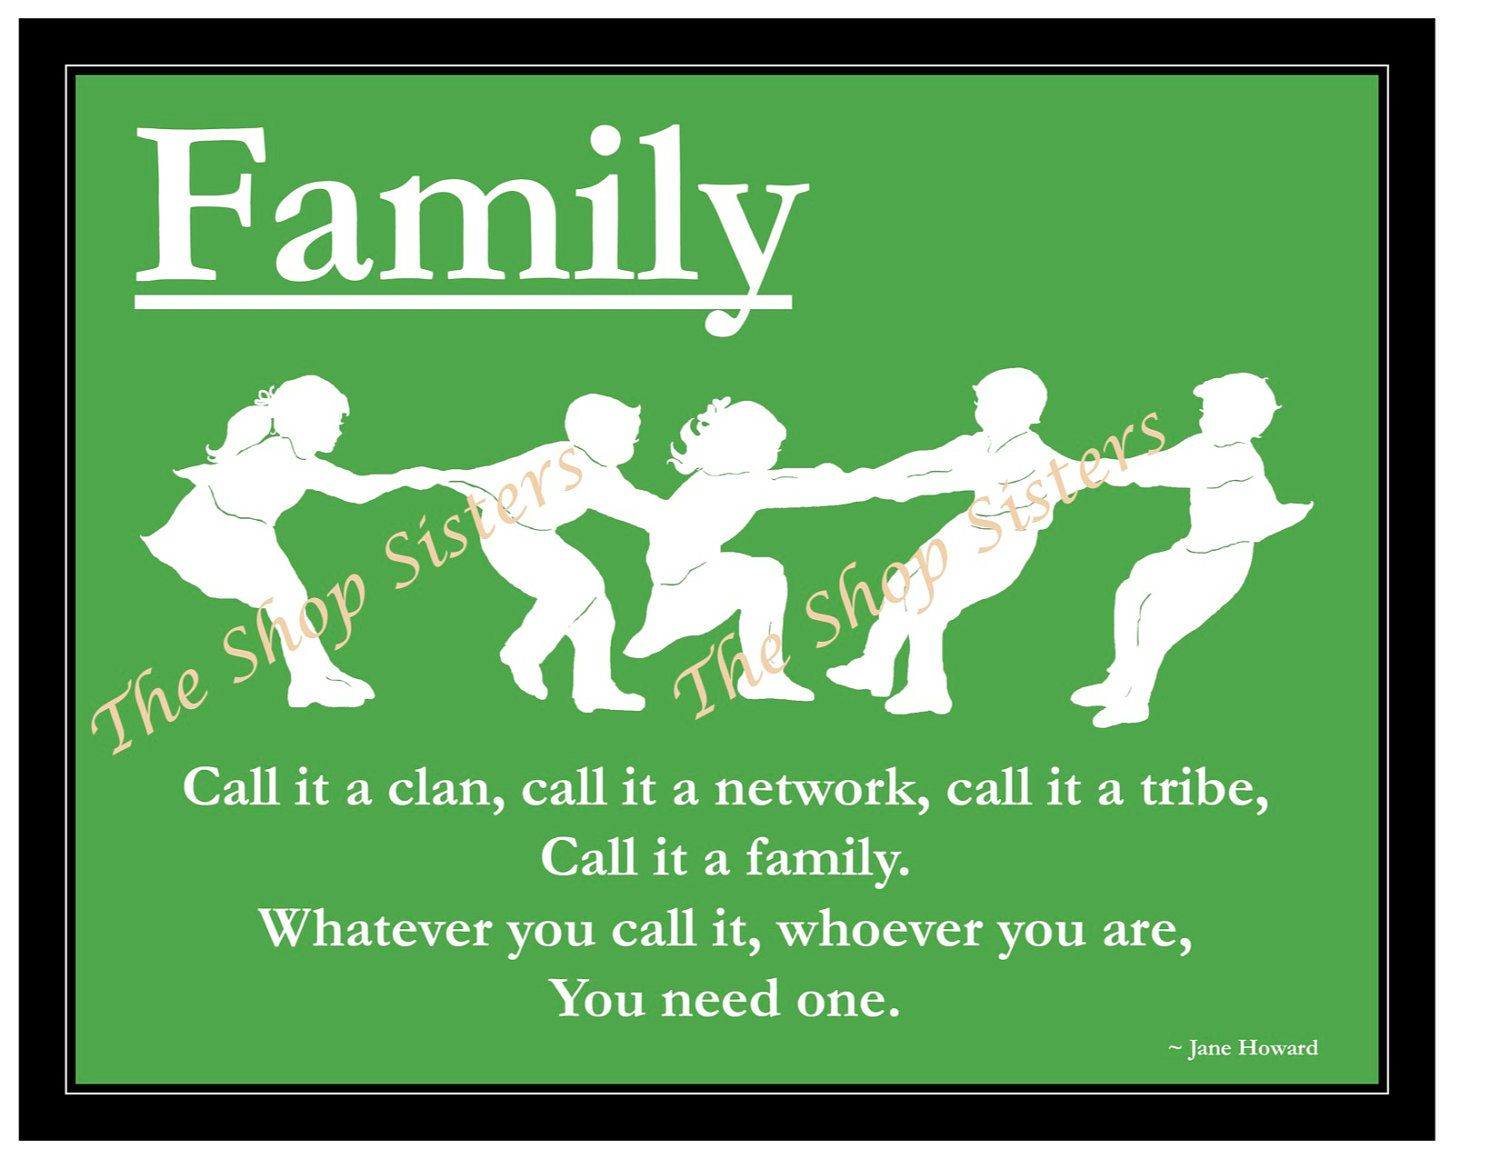 Reunion Quotes And Sayings: Family Reunion Poems And Quotes - Quoteko.